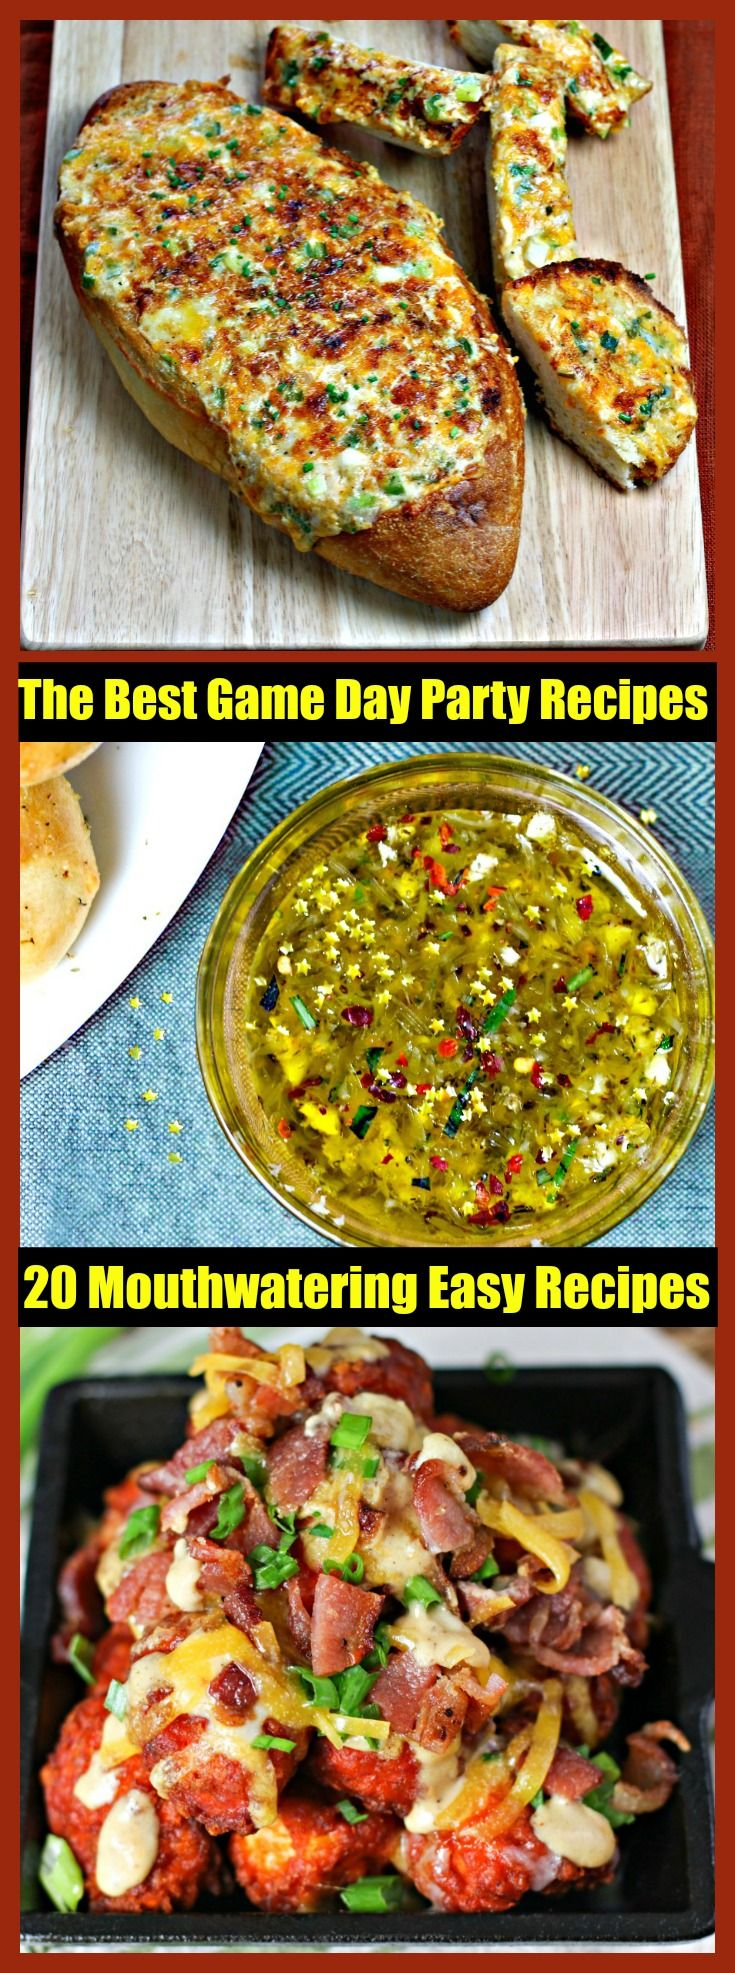 Are you ready to throw the perfect Super Bowl Party with the BEST Crowd-Ready Game Day recipe ideas? Dips, wings, chili, sliders, desserts, meatballs and more. Click to read more!